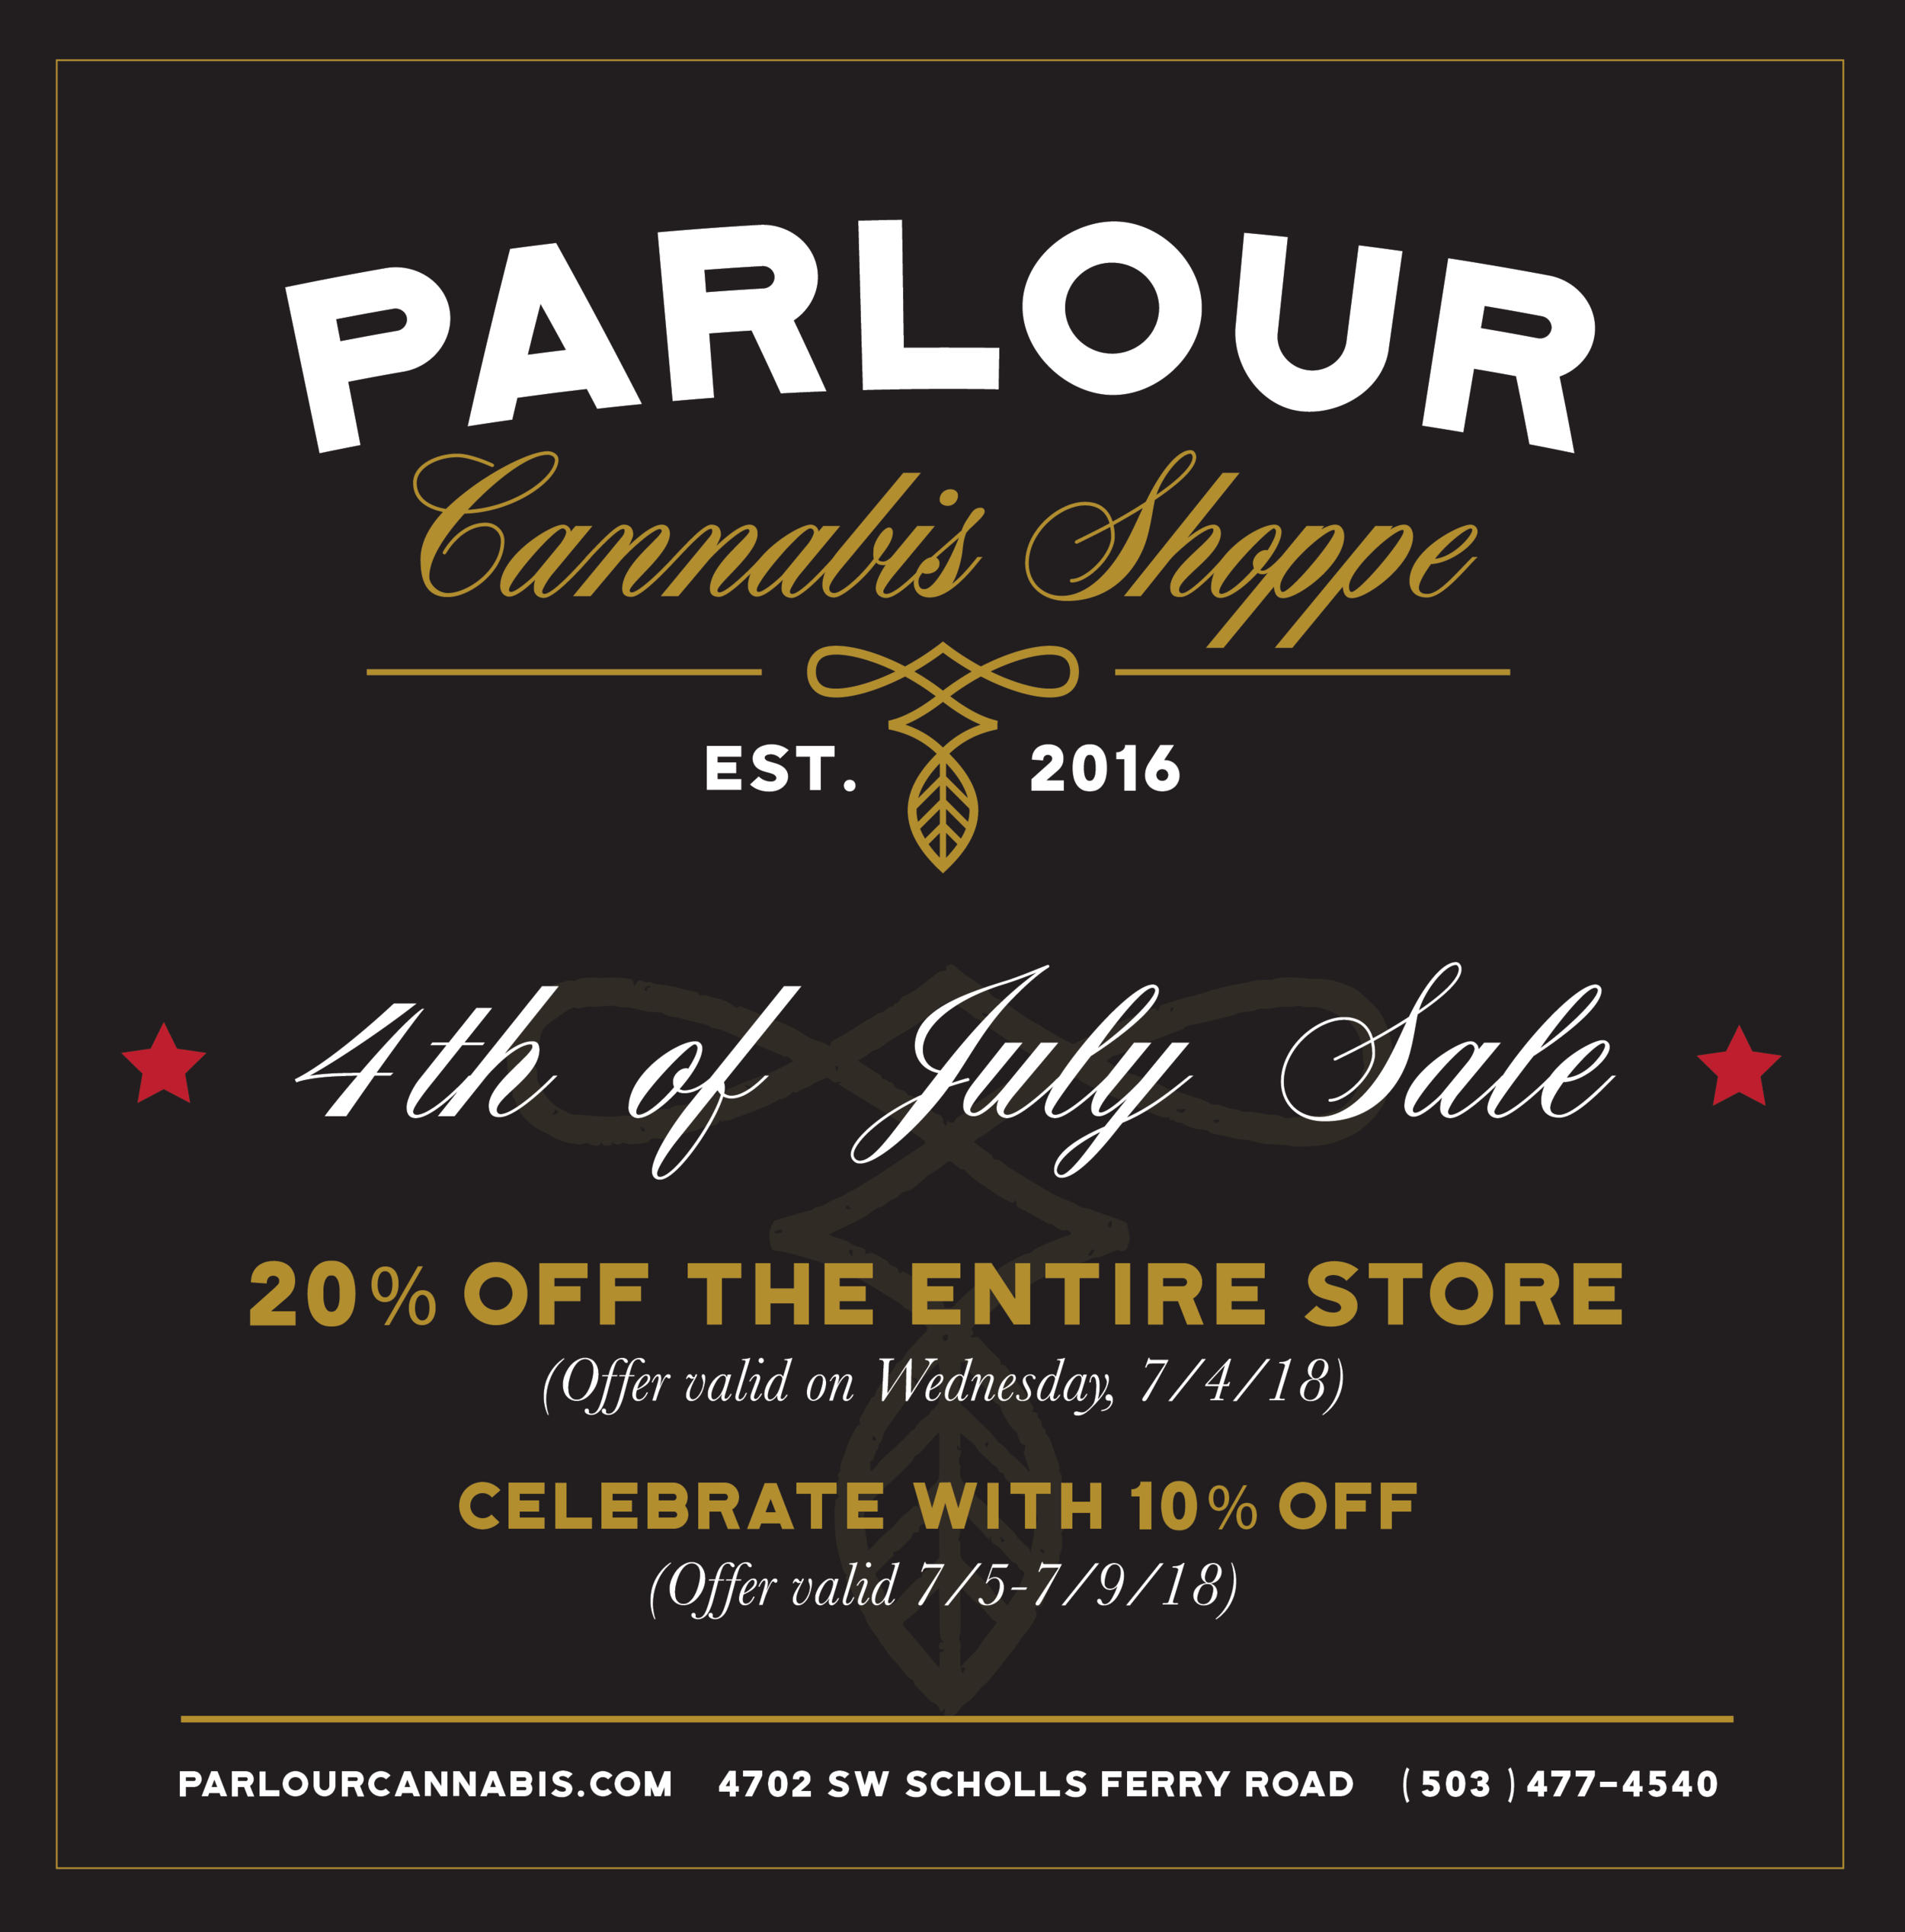 Parlour 4th of July sale-2-01.png